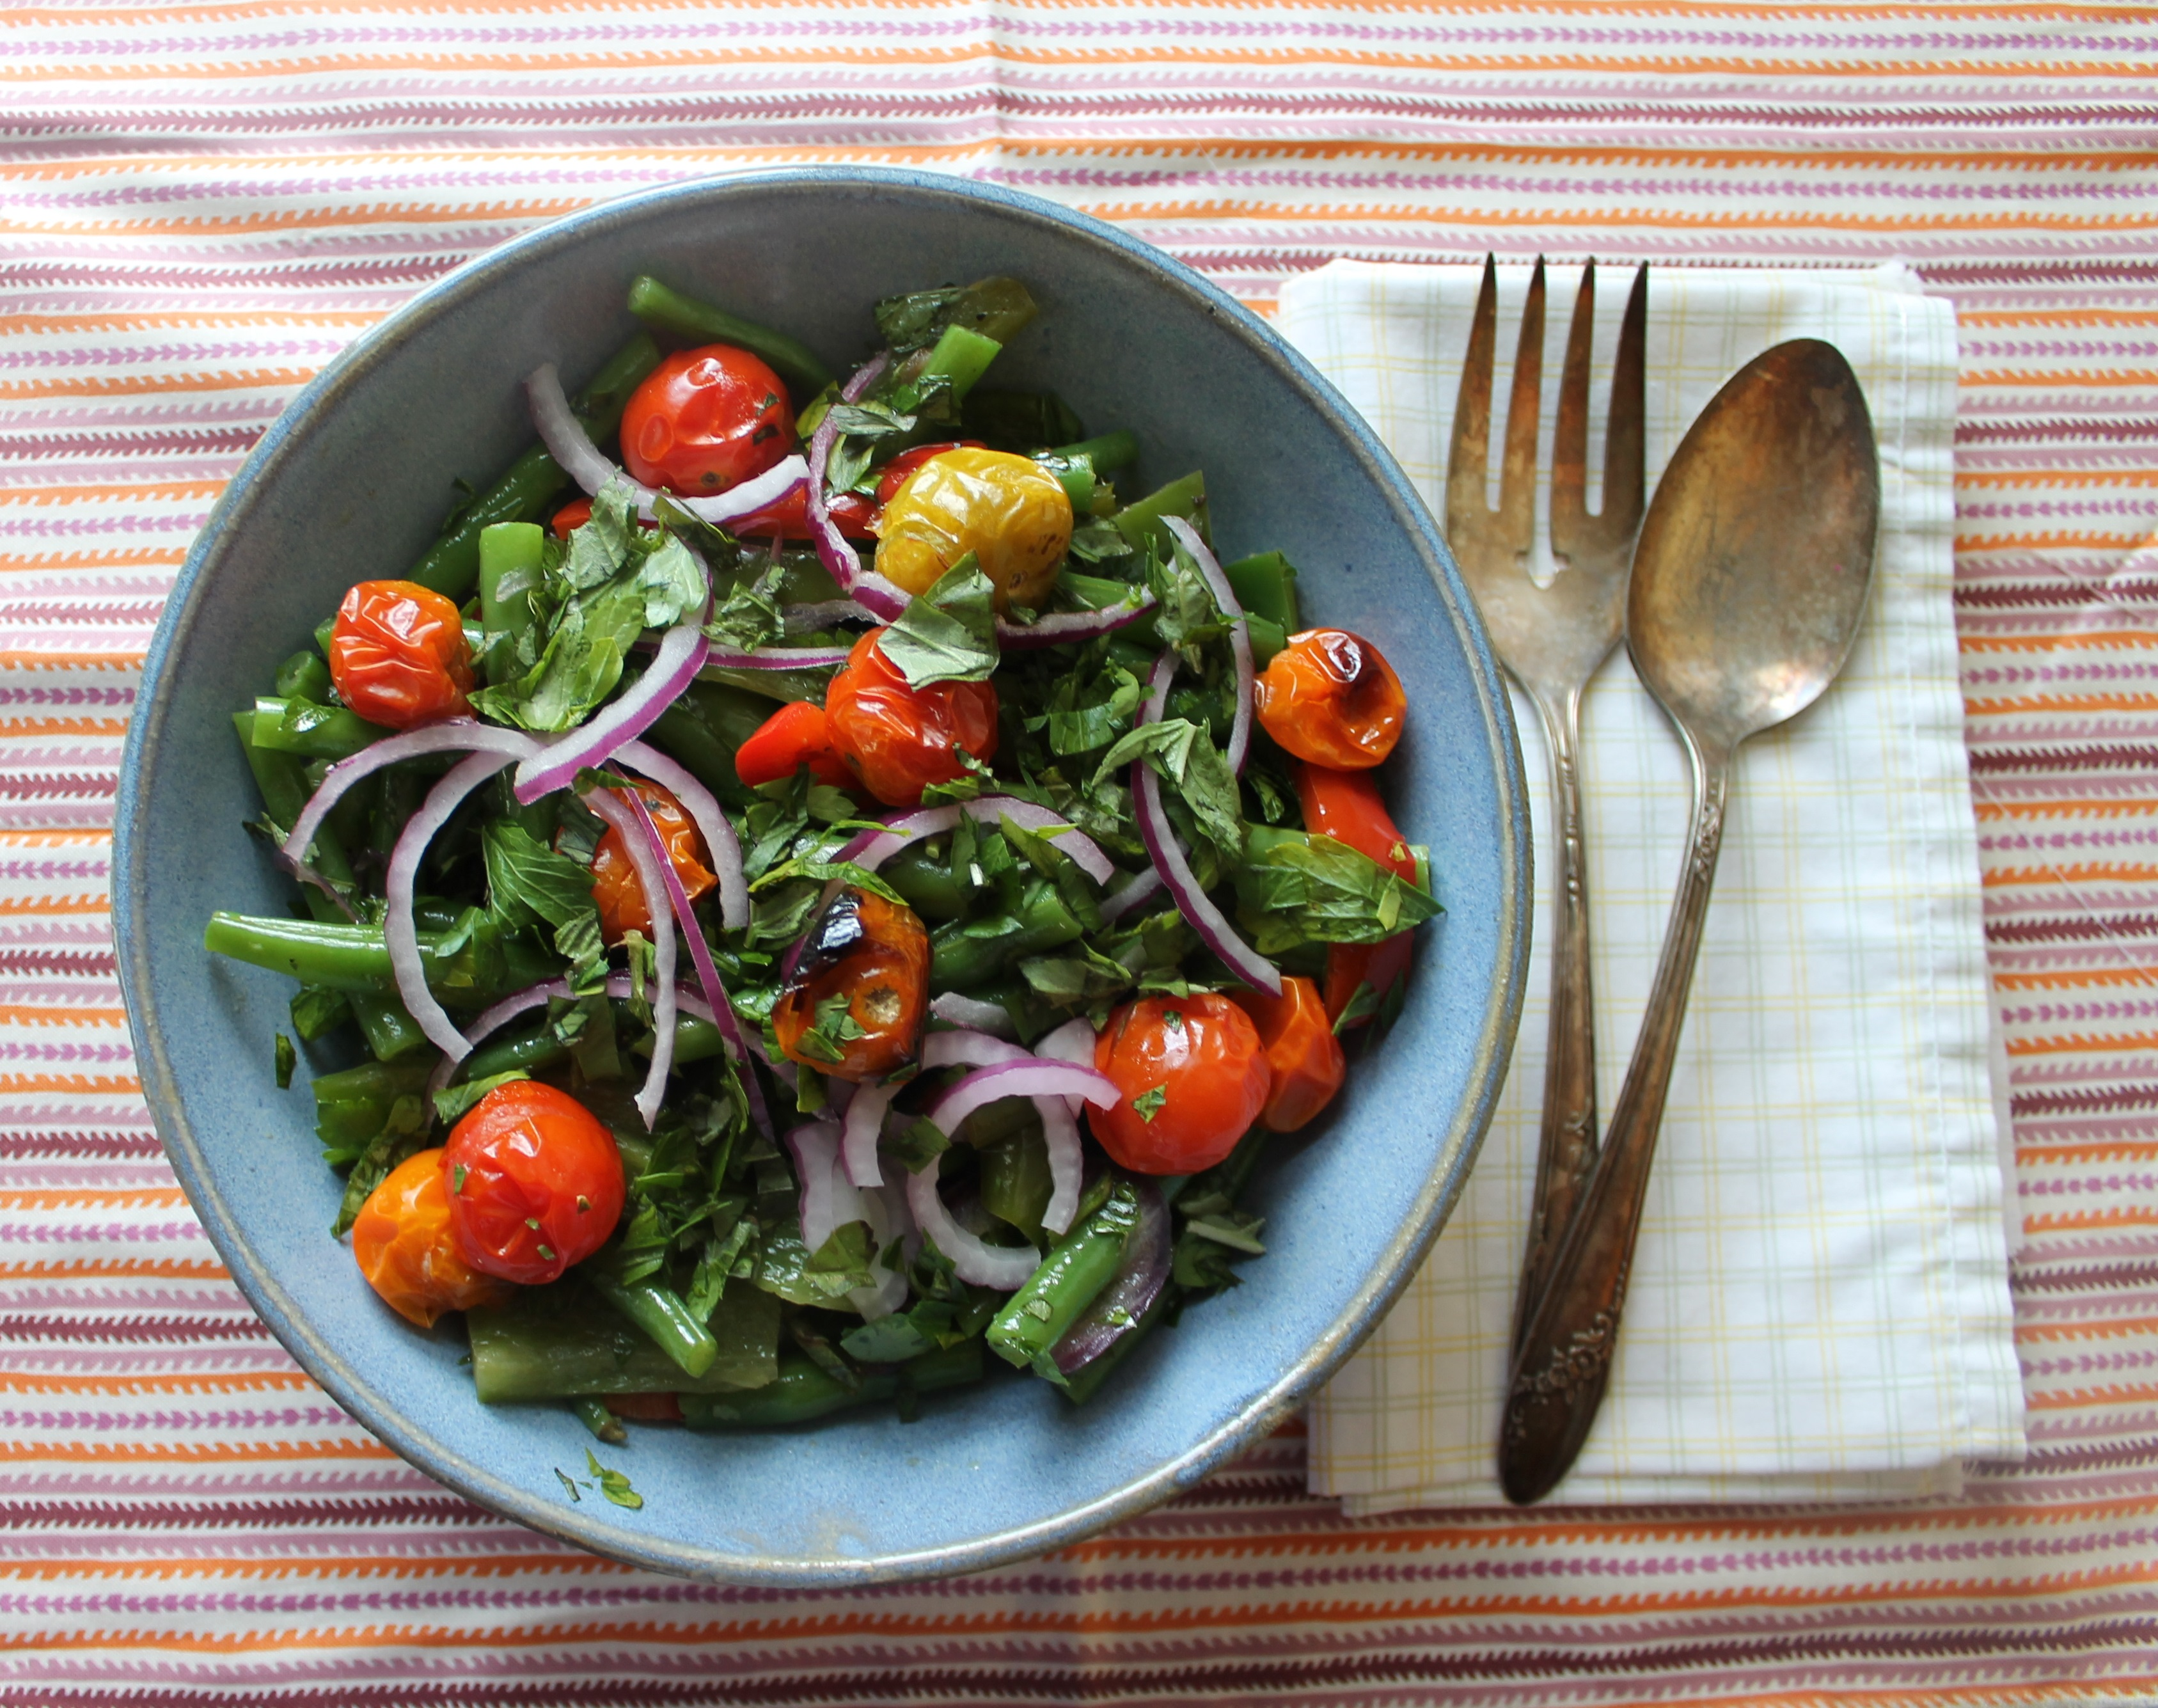 Cooking a salad with cherry tomatoes 54